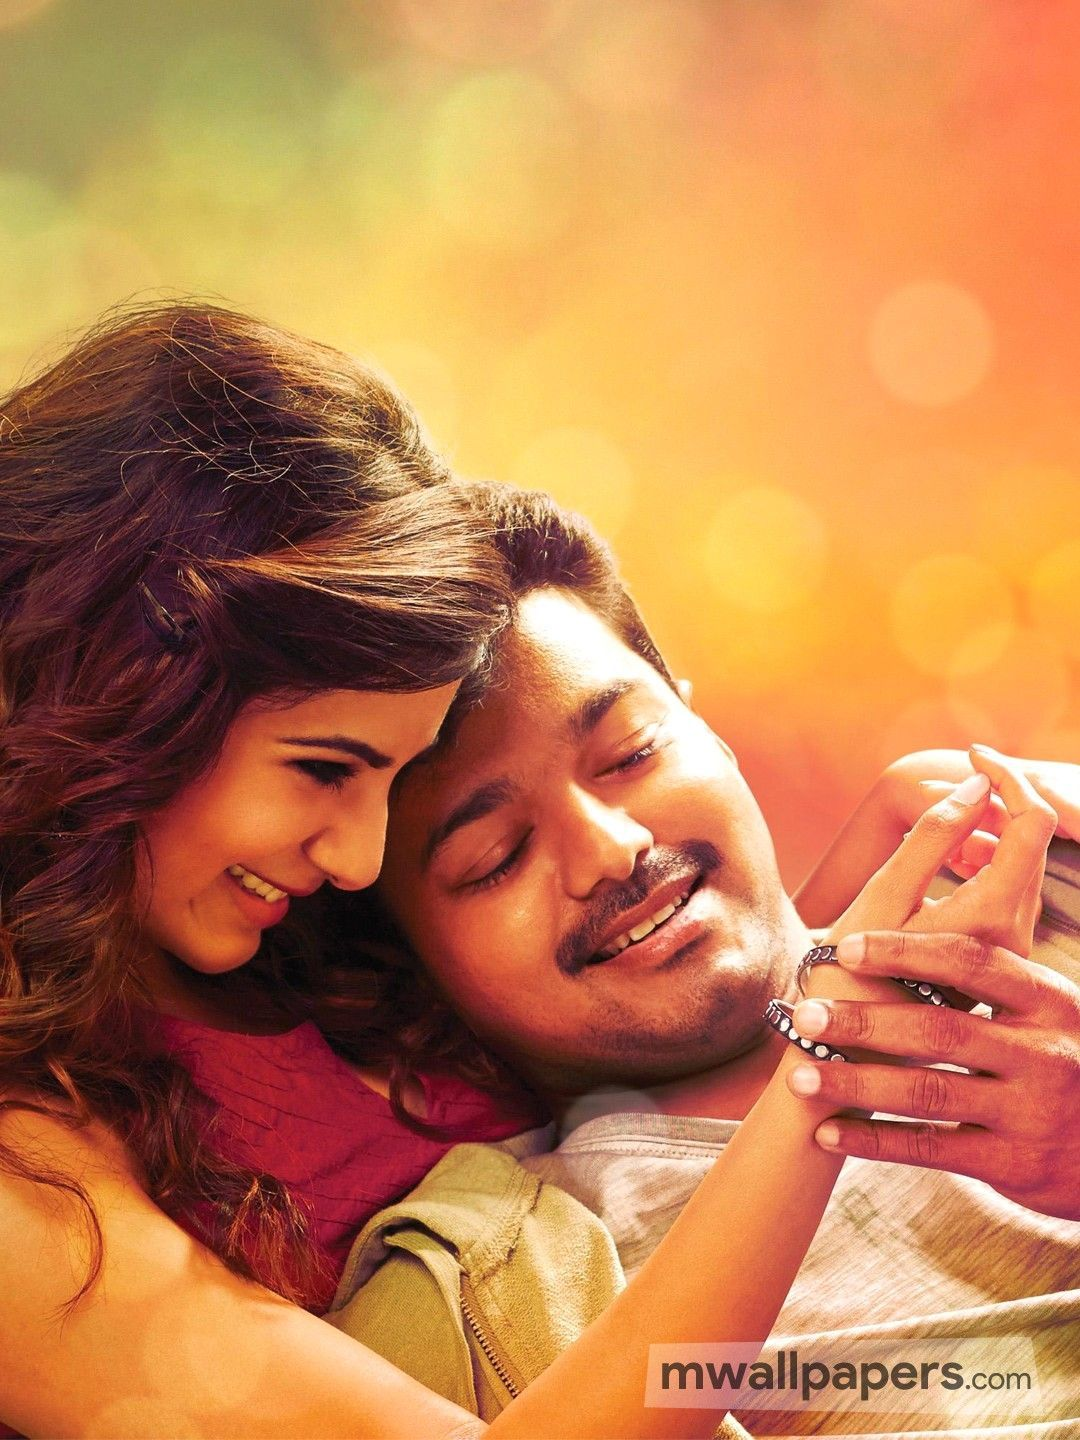 Ilayathalapathy Vijay Hd Wallpaper For Mobile New Tamil Movies 2019 3101204 Hd Wallpaper Backgrounds Download